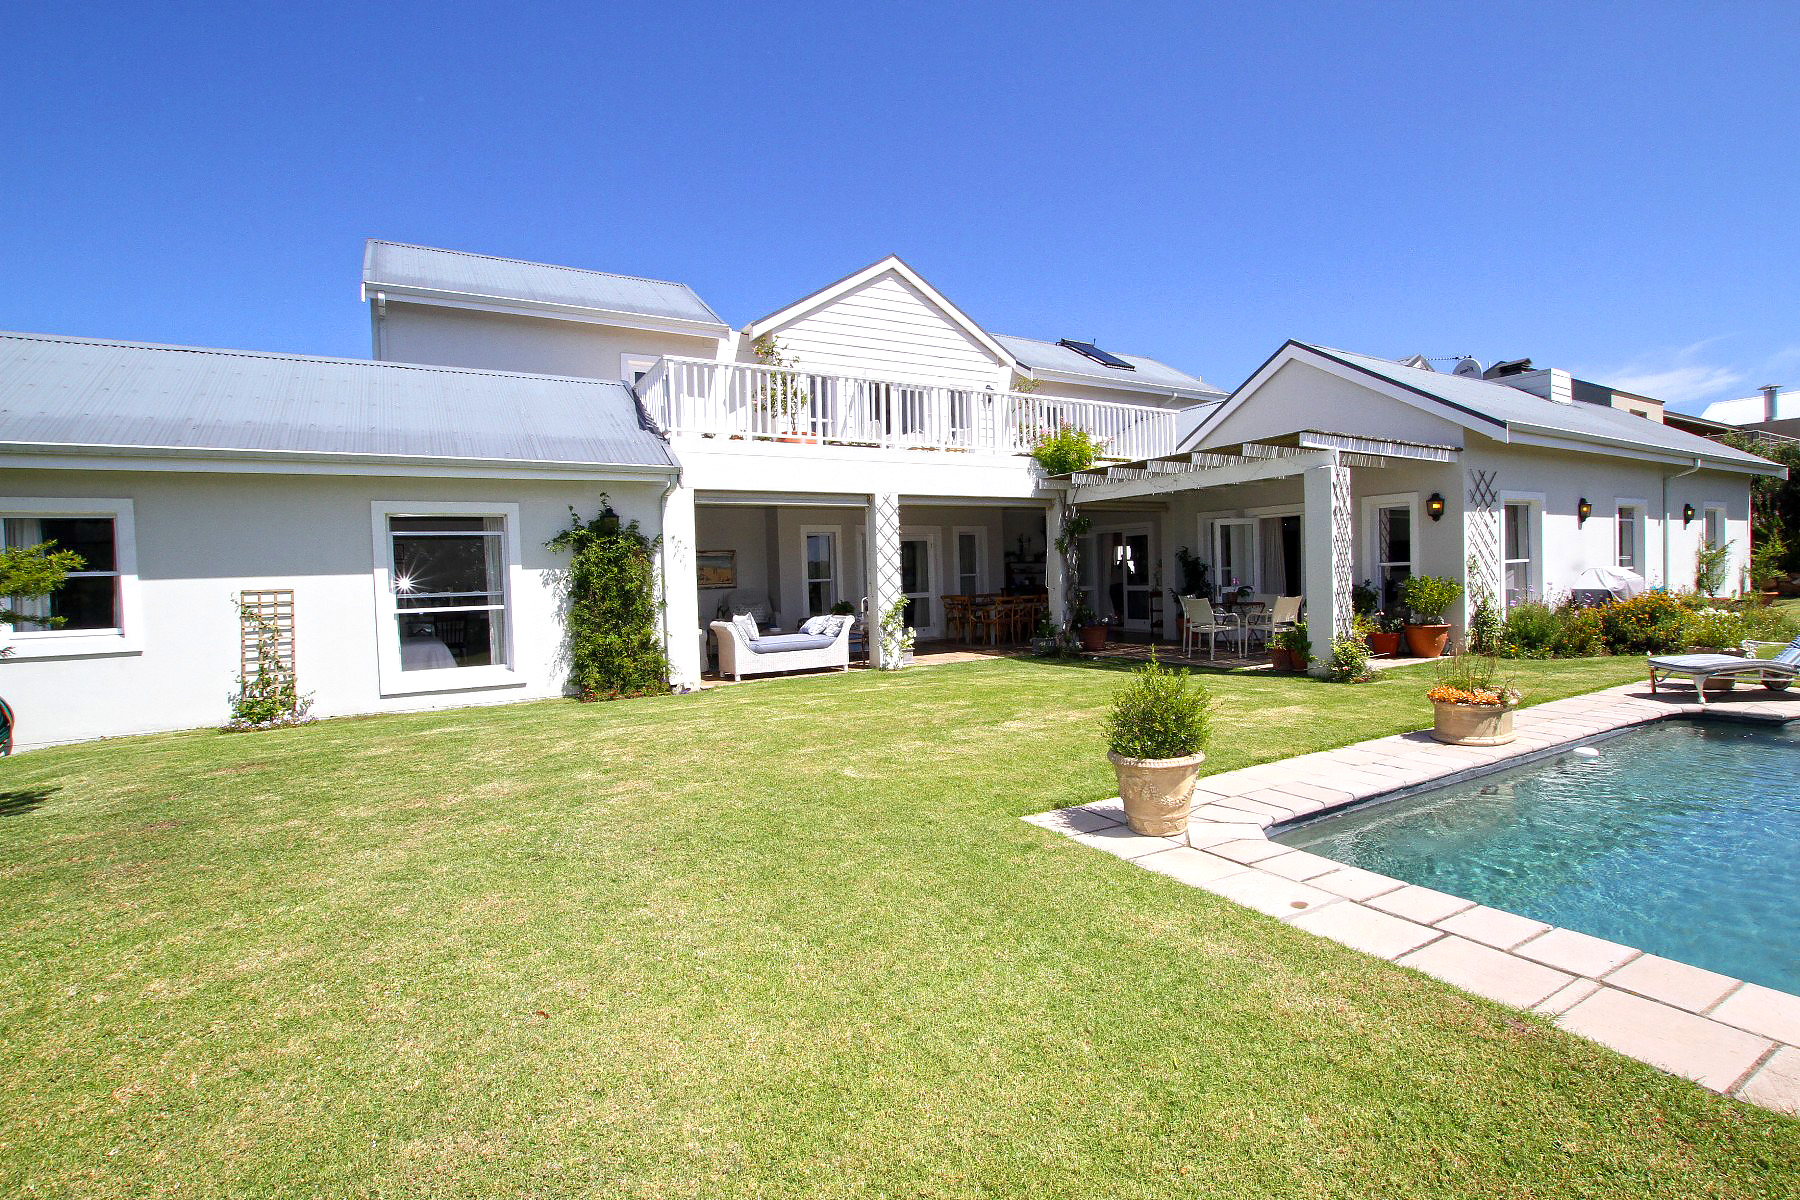 Single Family Home for Sale at Brackenridge Delight Plettenberg Bay, Western Cape, 6600 South Africa